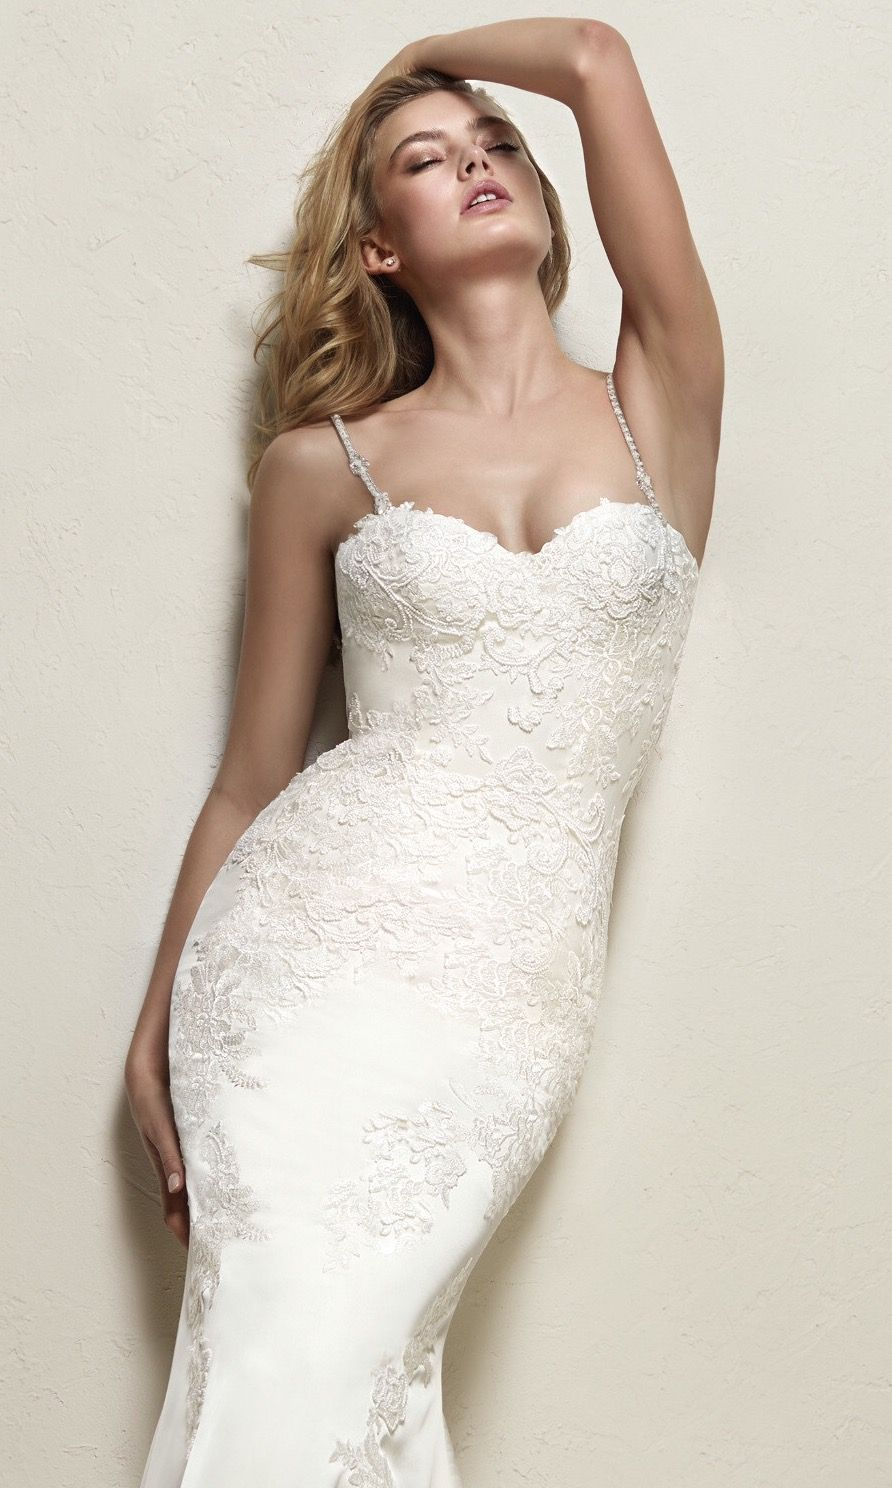 Drens From Pronovias Is Available At Sincerely, The Bride Located In The  Vancouver, WA/Portland Metro Area.